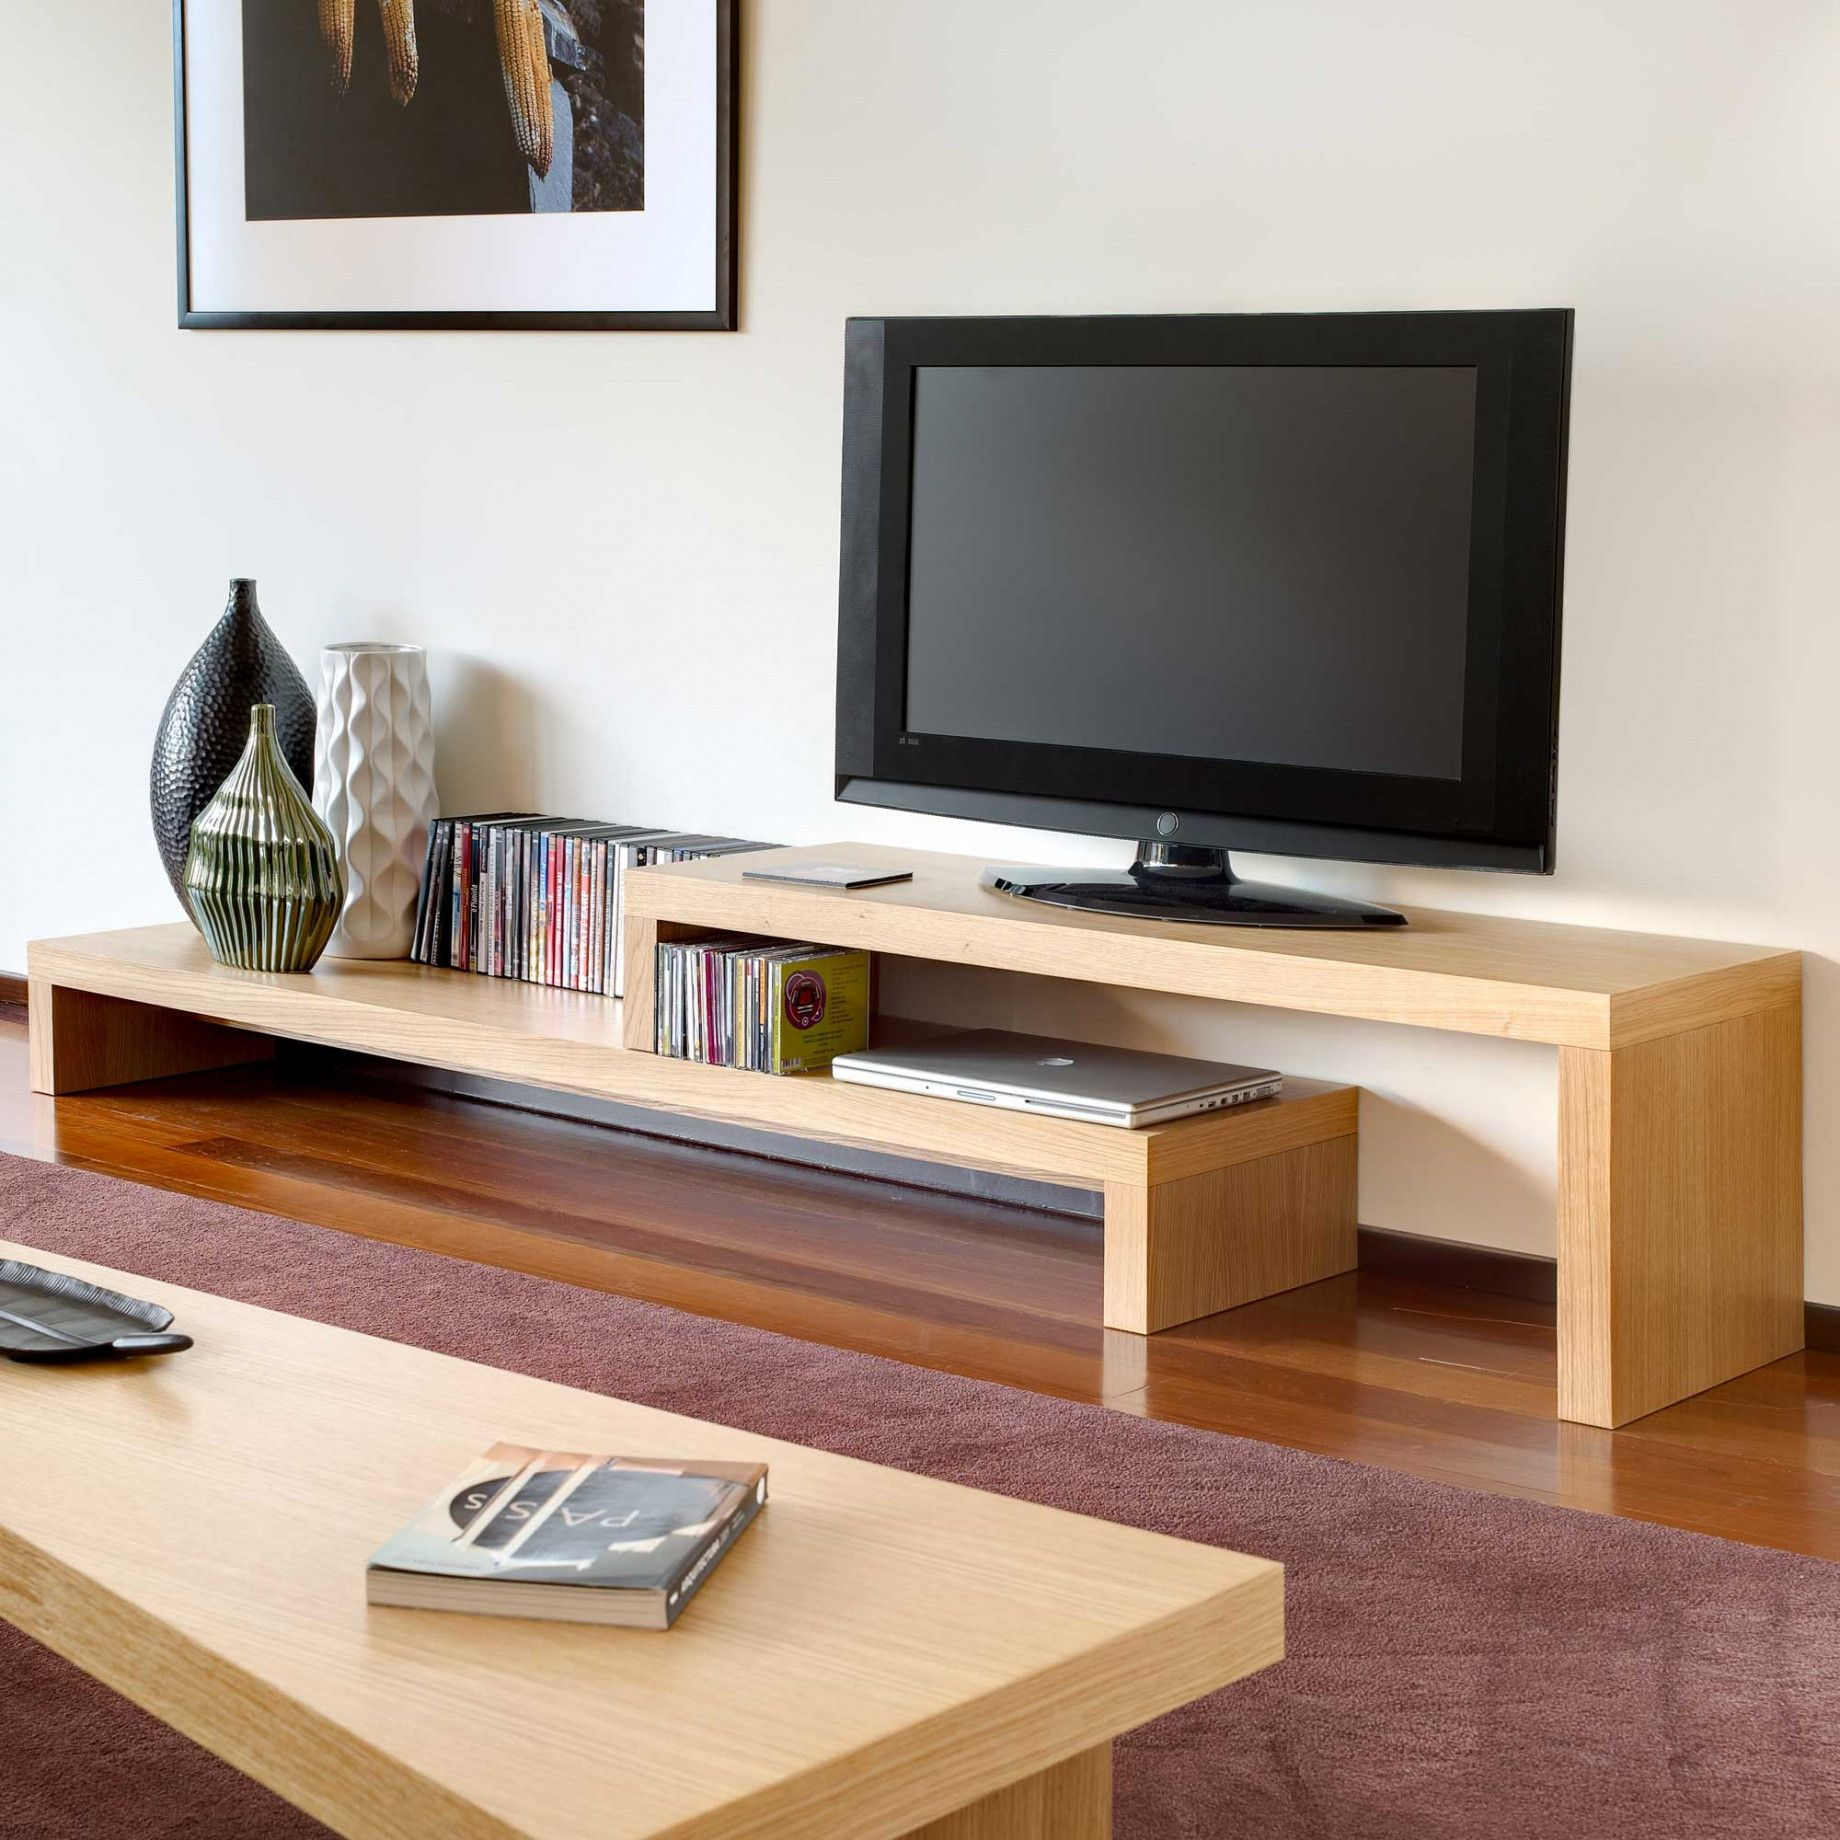 fabriquer un meuble tv en bois 21 l gant fabriquer meuble. Black Bedroom Furniture Sets. Home Design Ideas